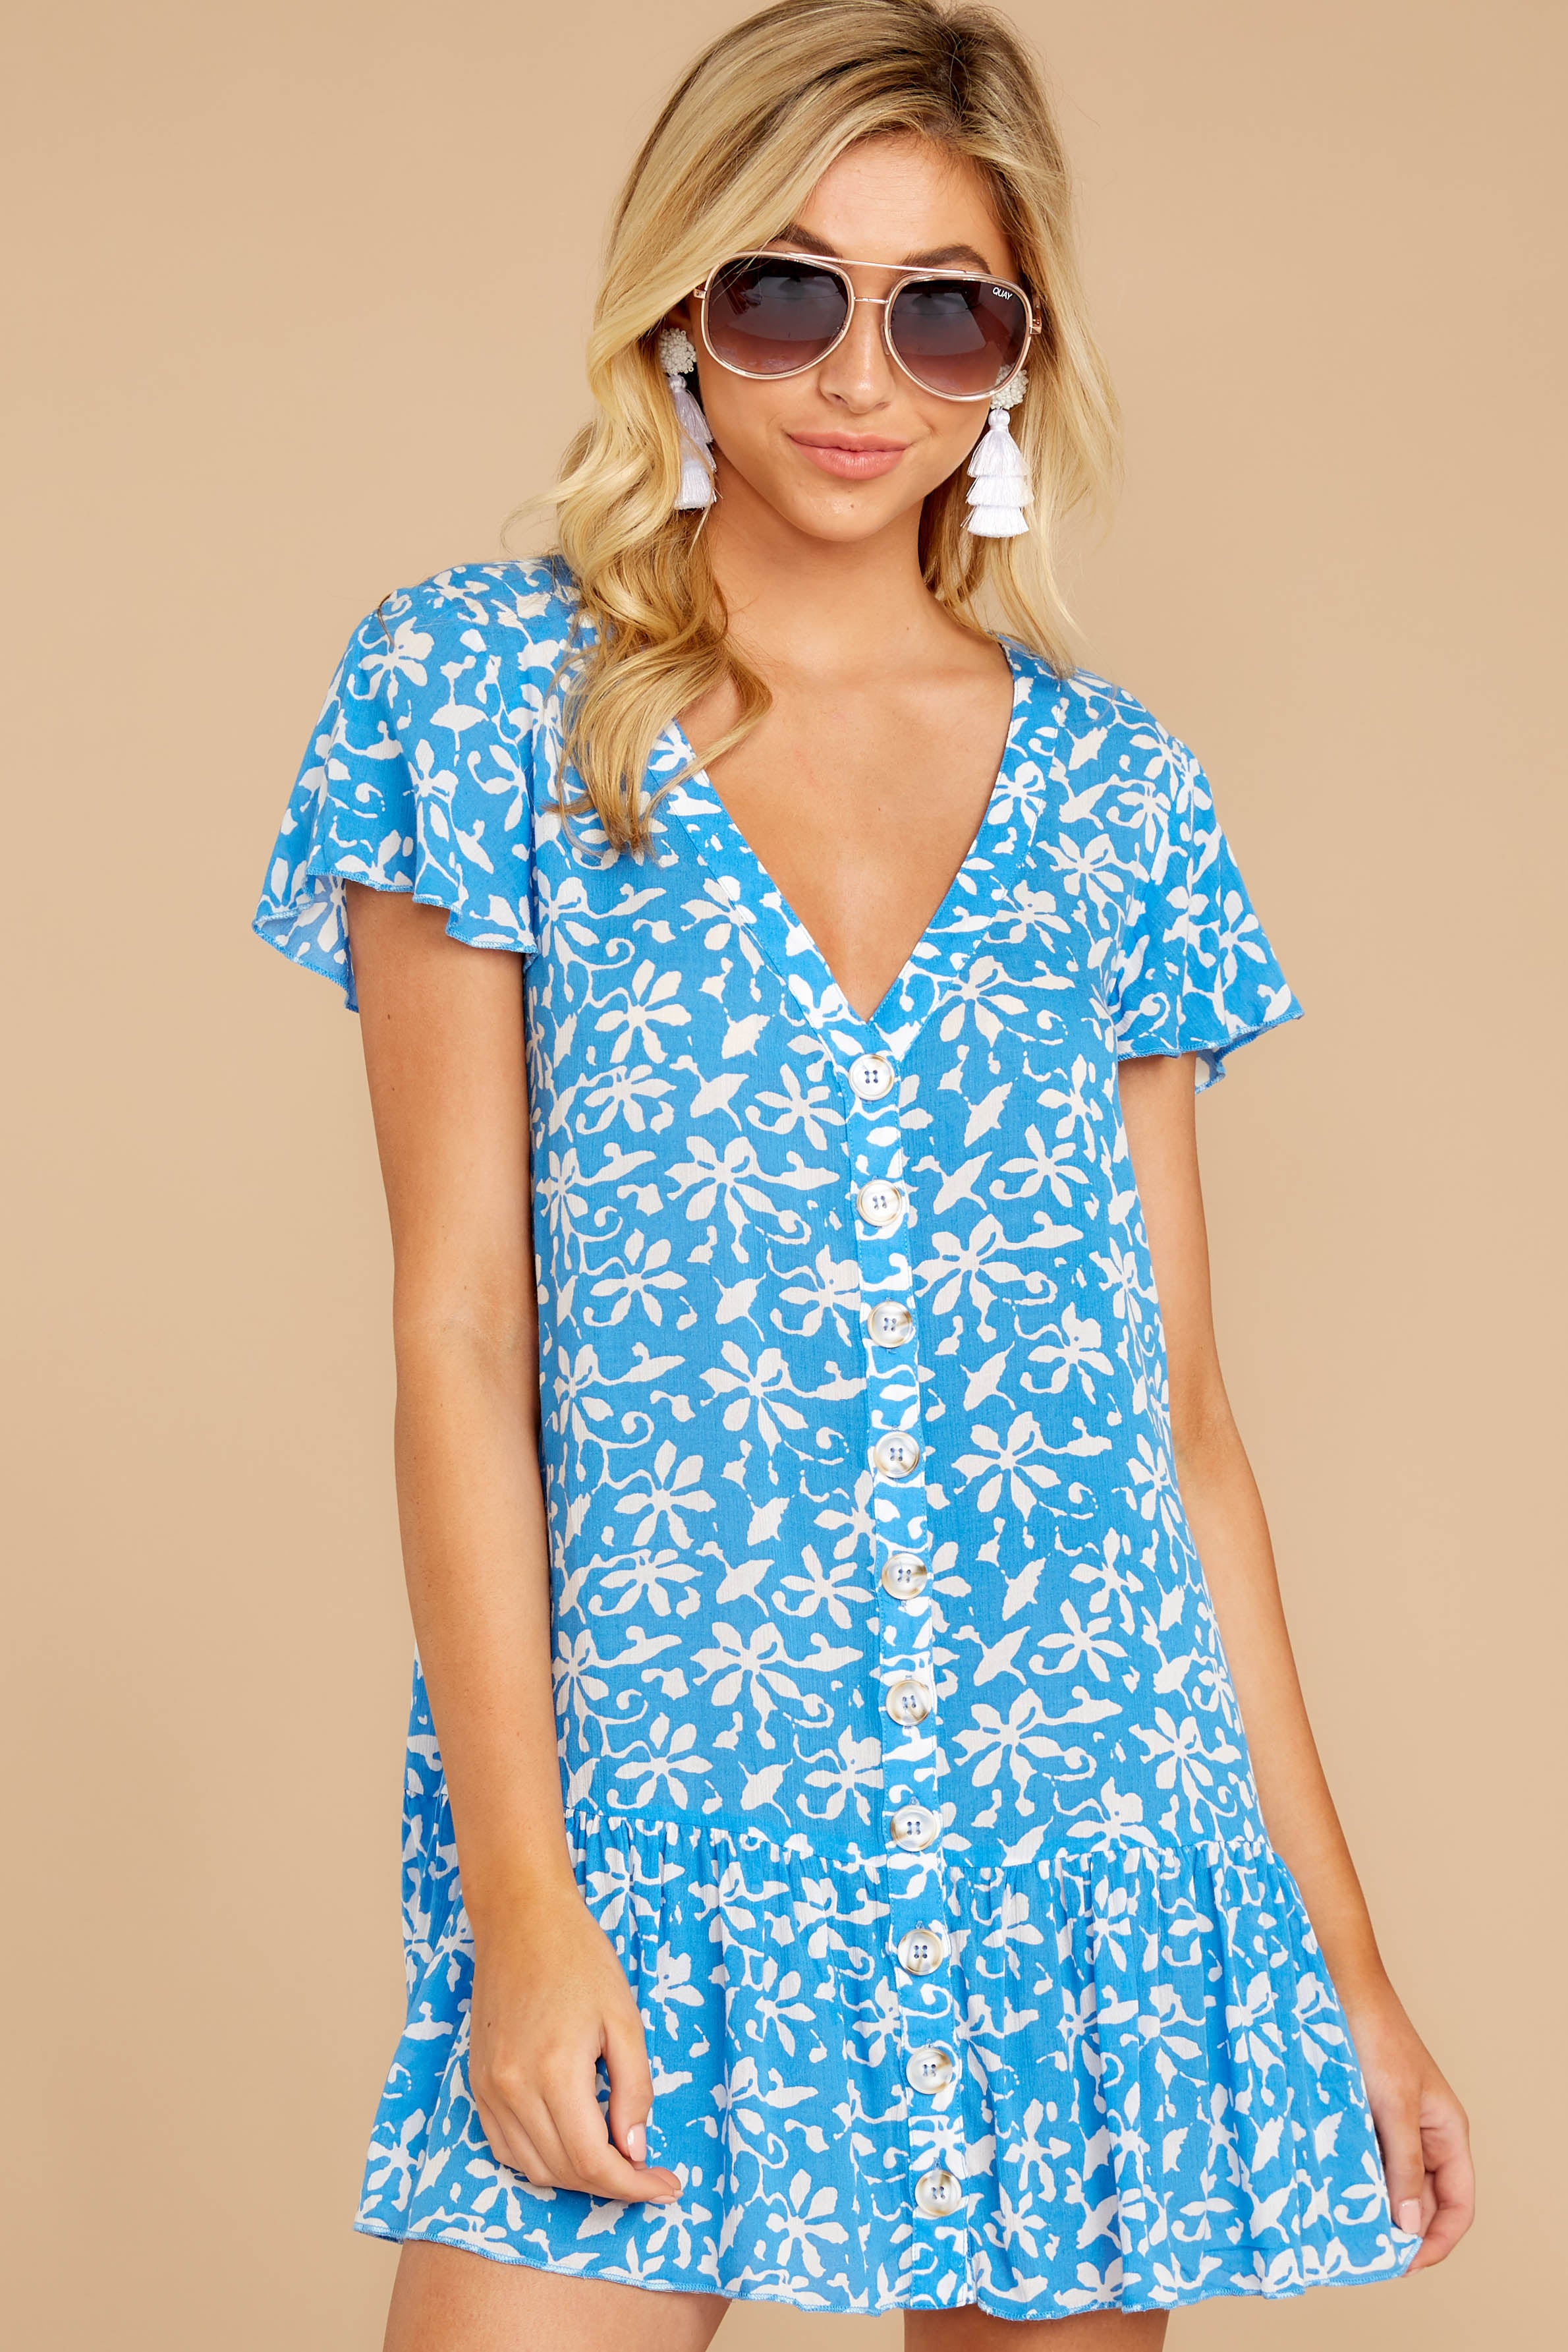 5 Sweeter By The Hour Bright Blue Print Dress at reddress.com